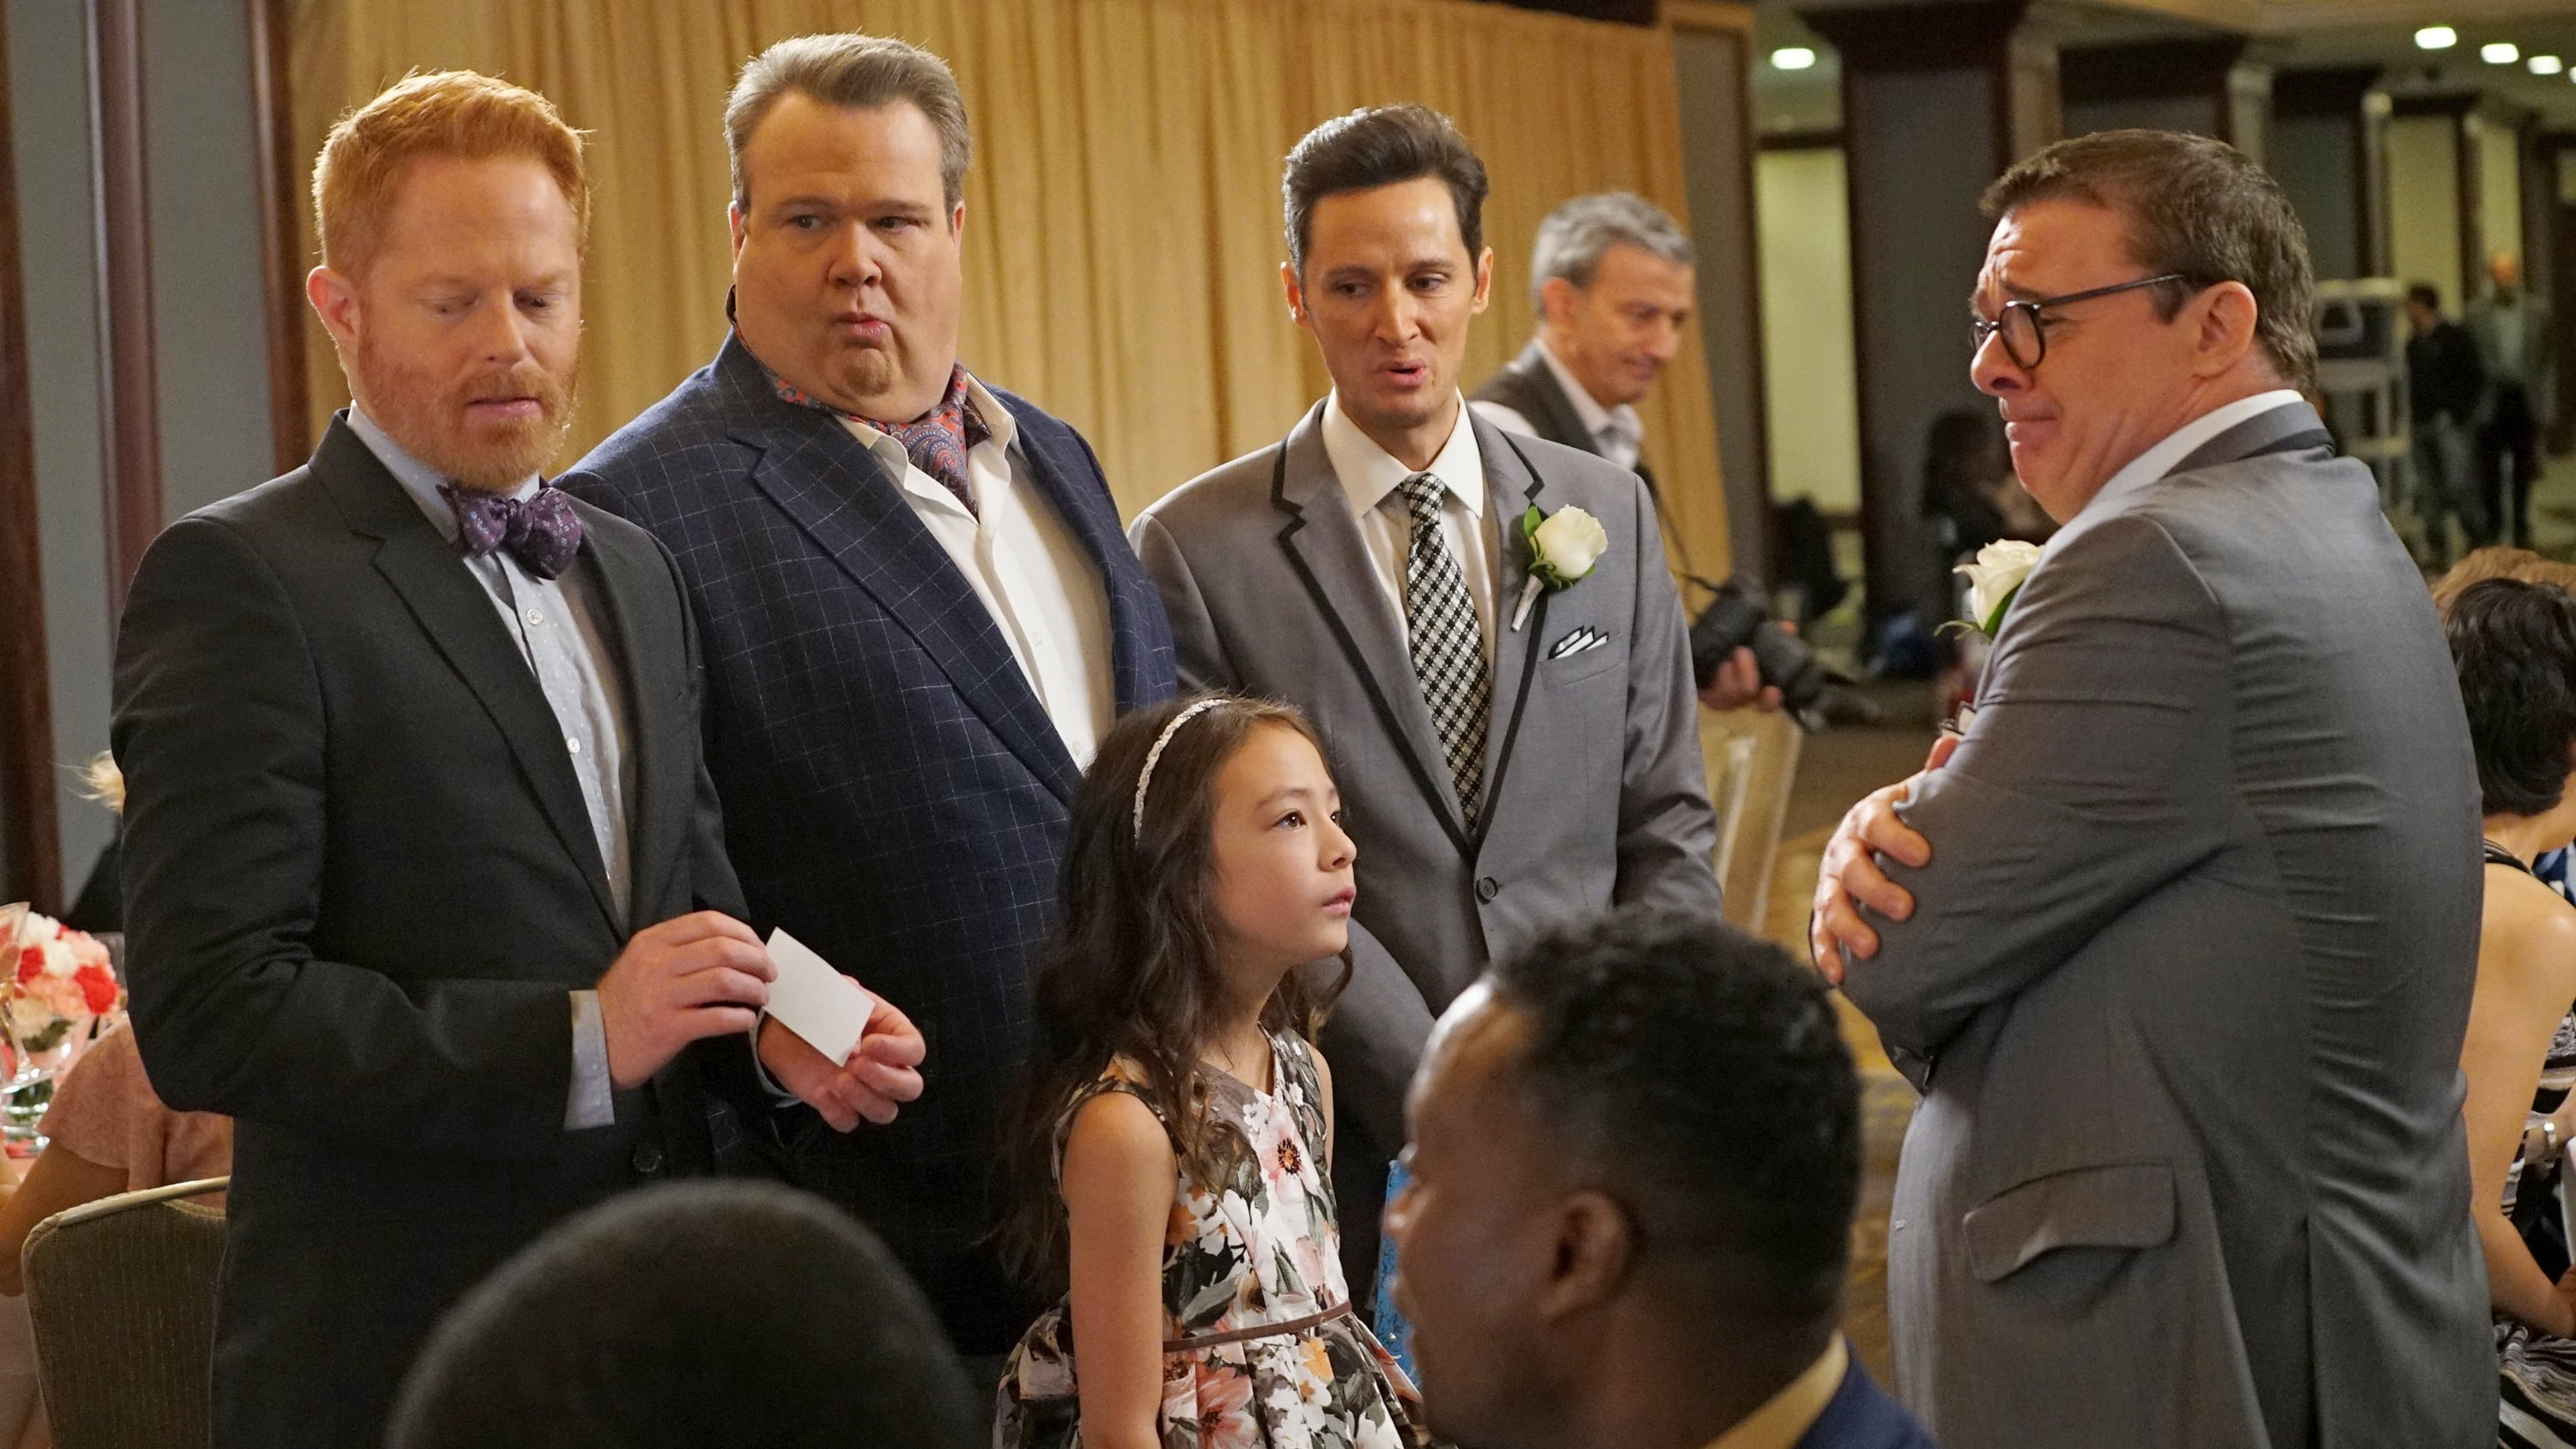 Modern Family - Season 7 Episode 15 : I Don't Know How She Does It